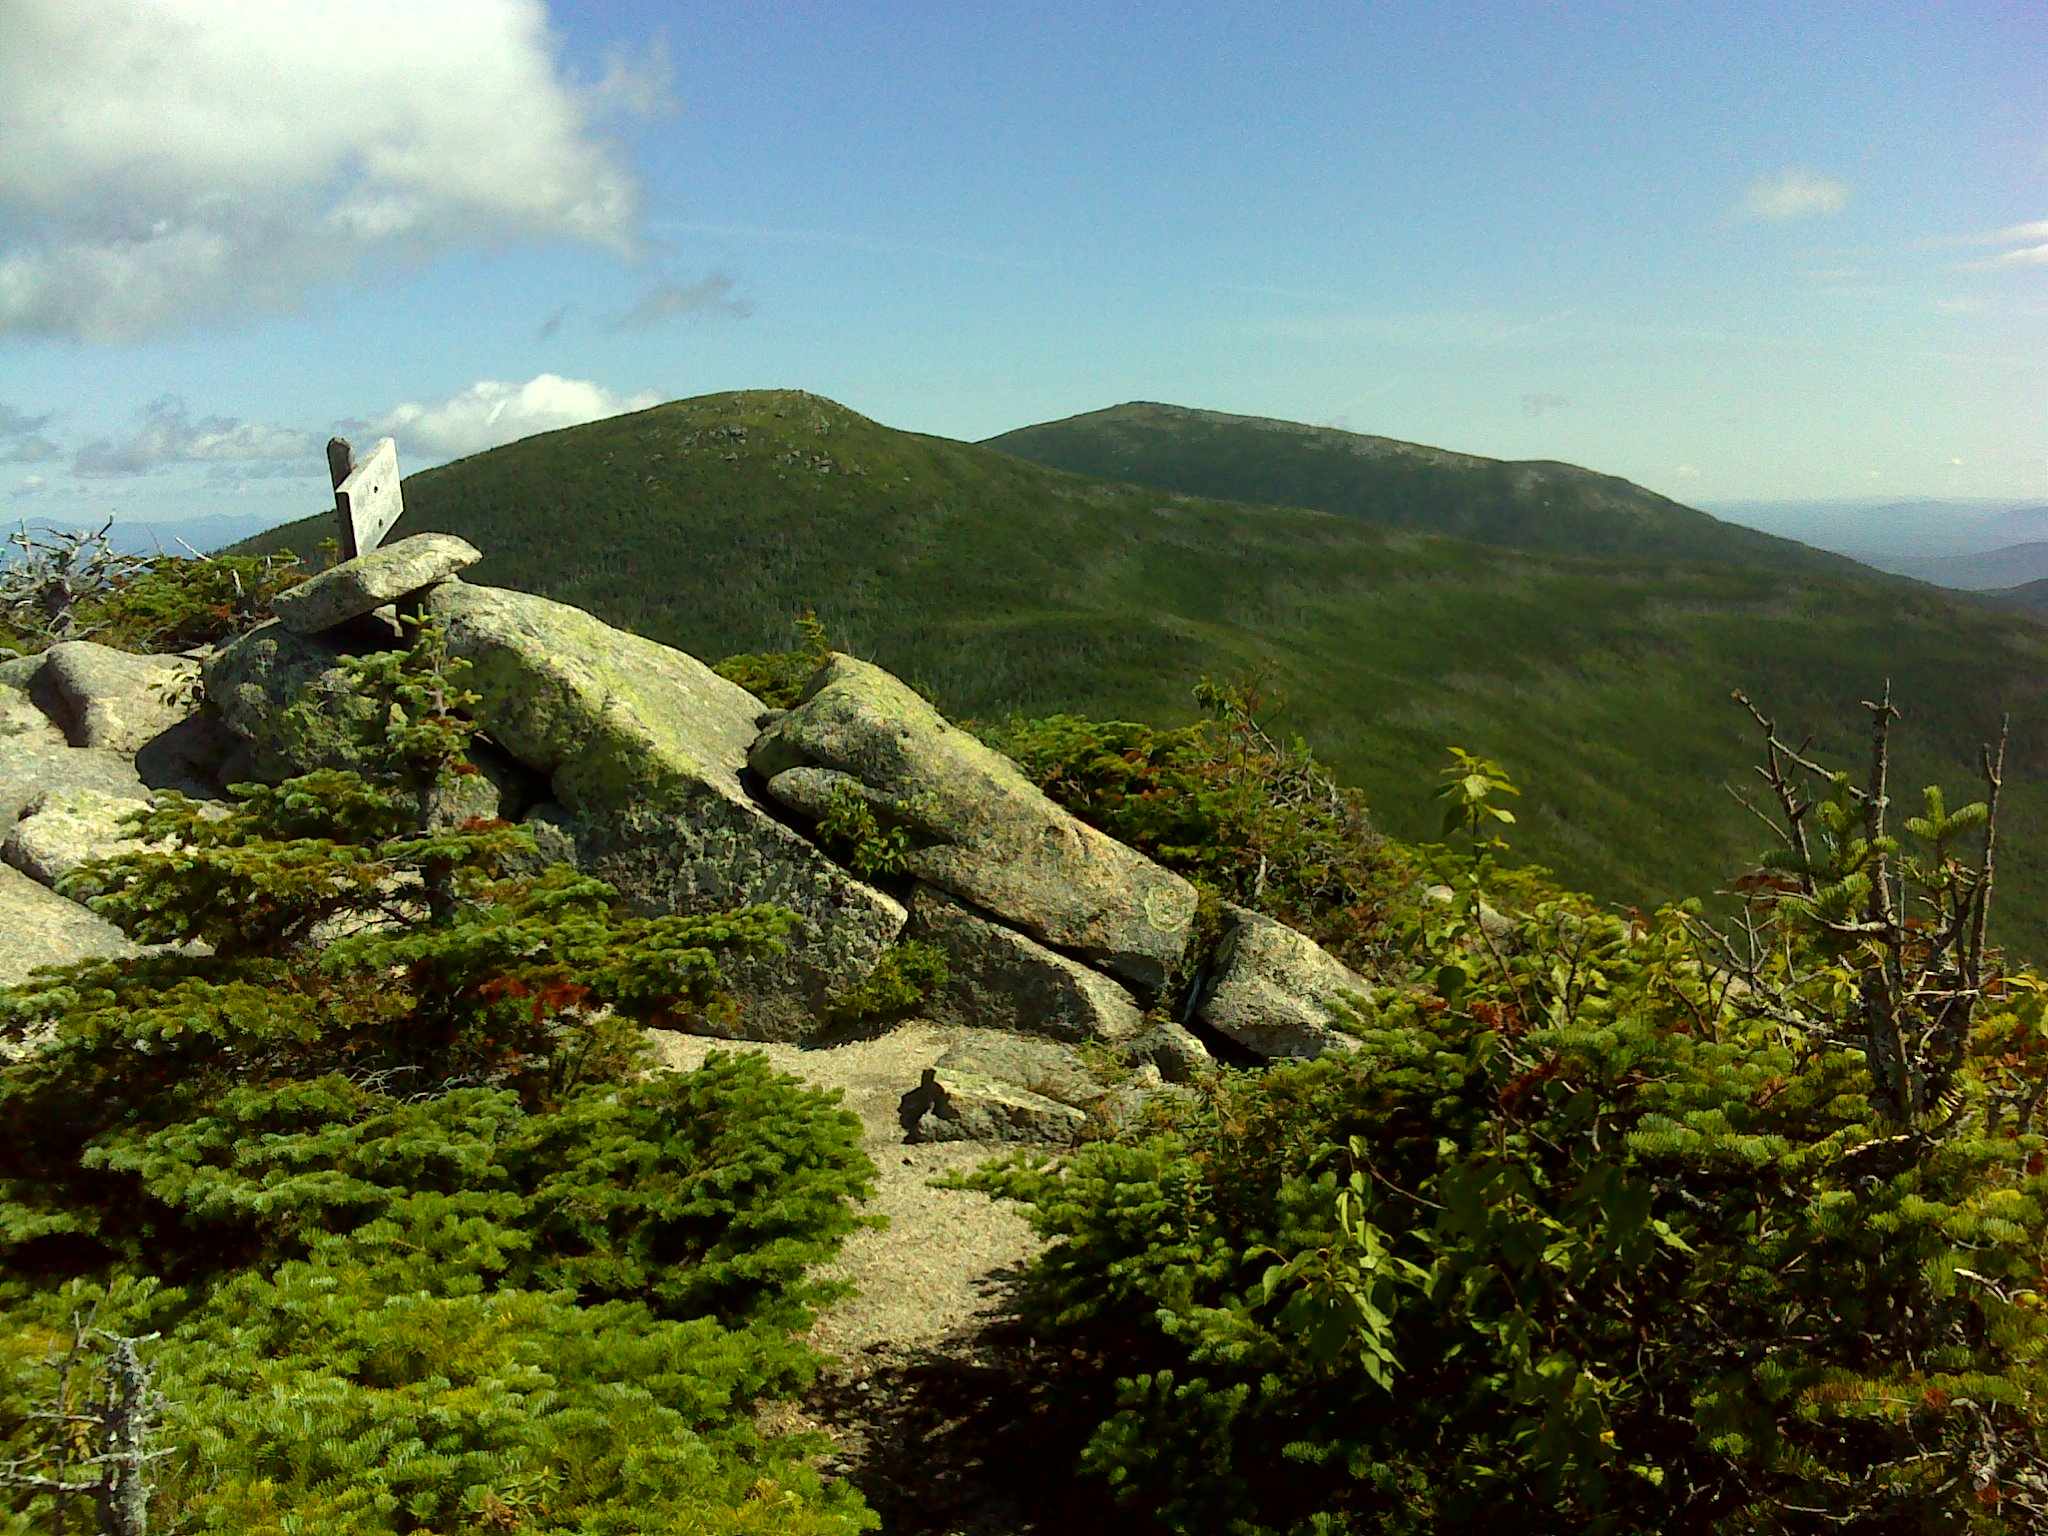 Looking across the summit to The Brothers